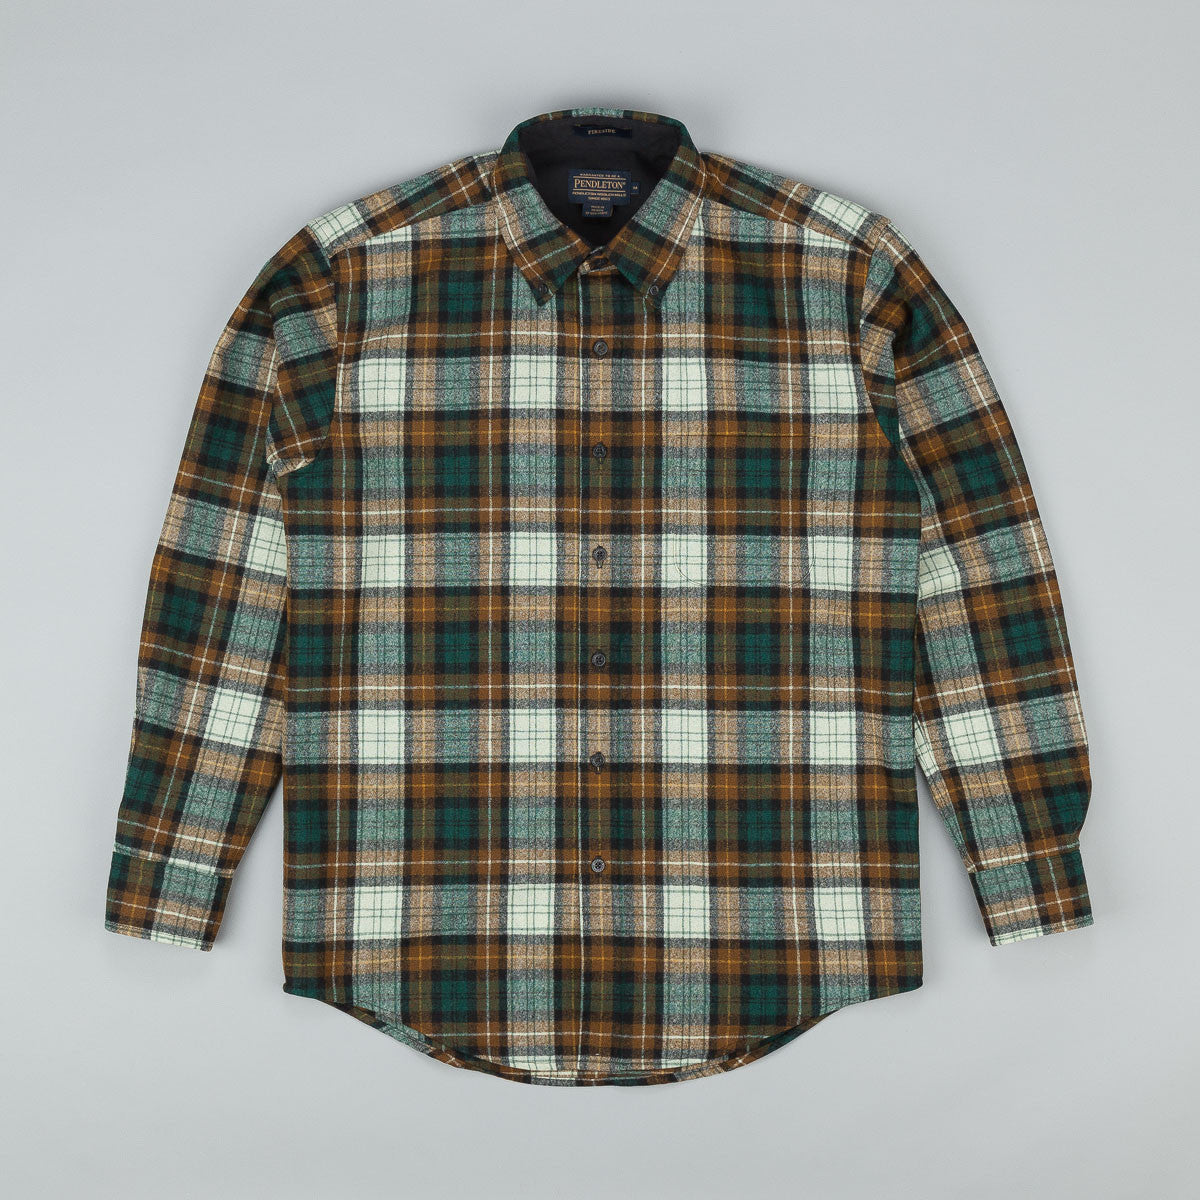 Pendleton Fireside Button Down Shirt - Tan